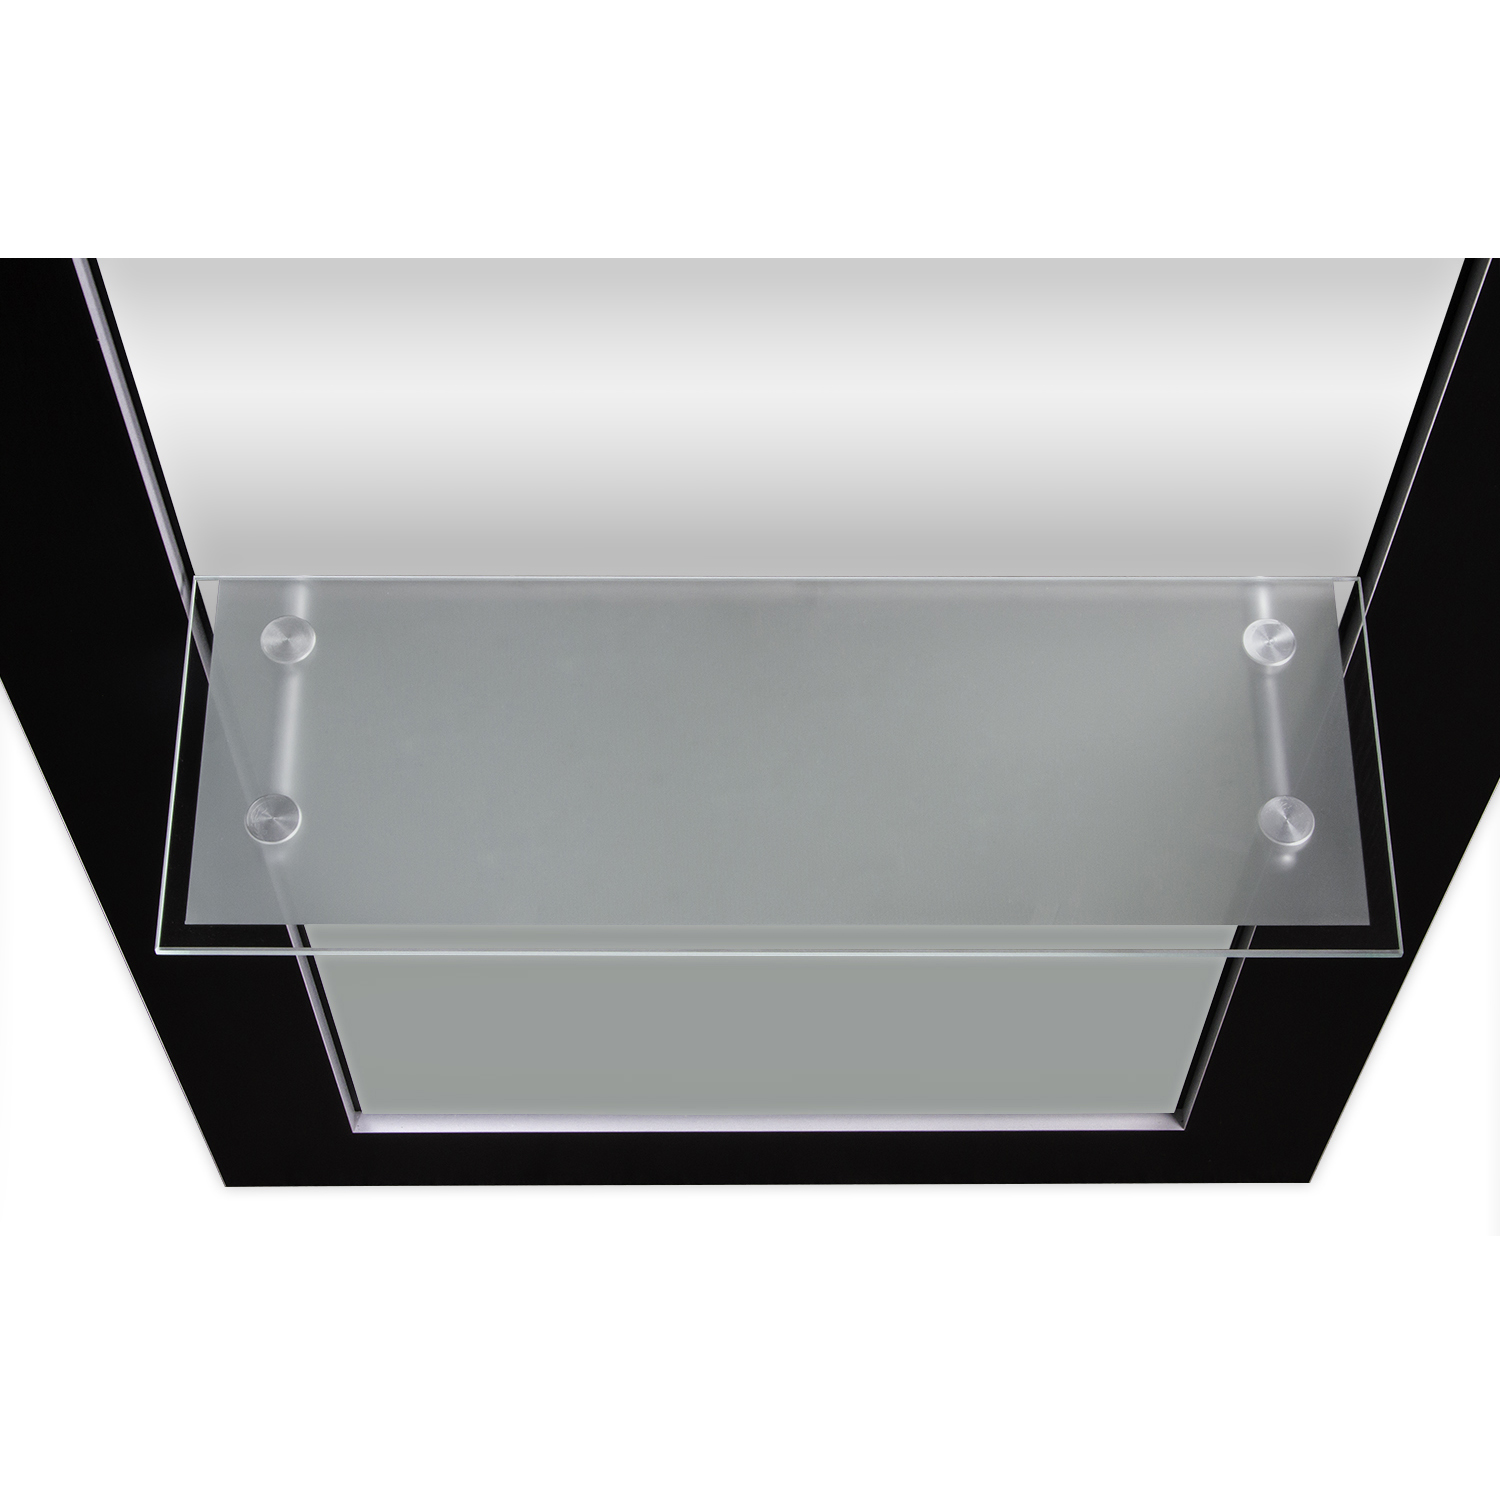 Fusion Mirrored Styling Station Black alternative product image 7